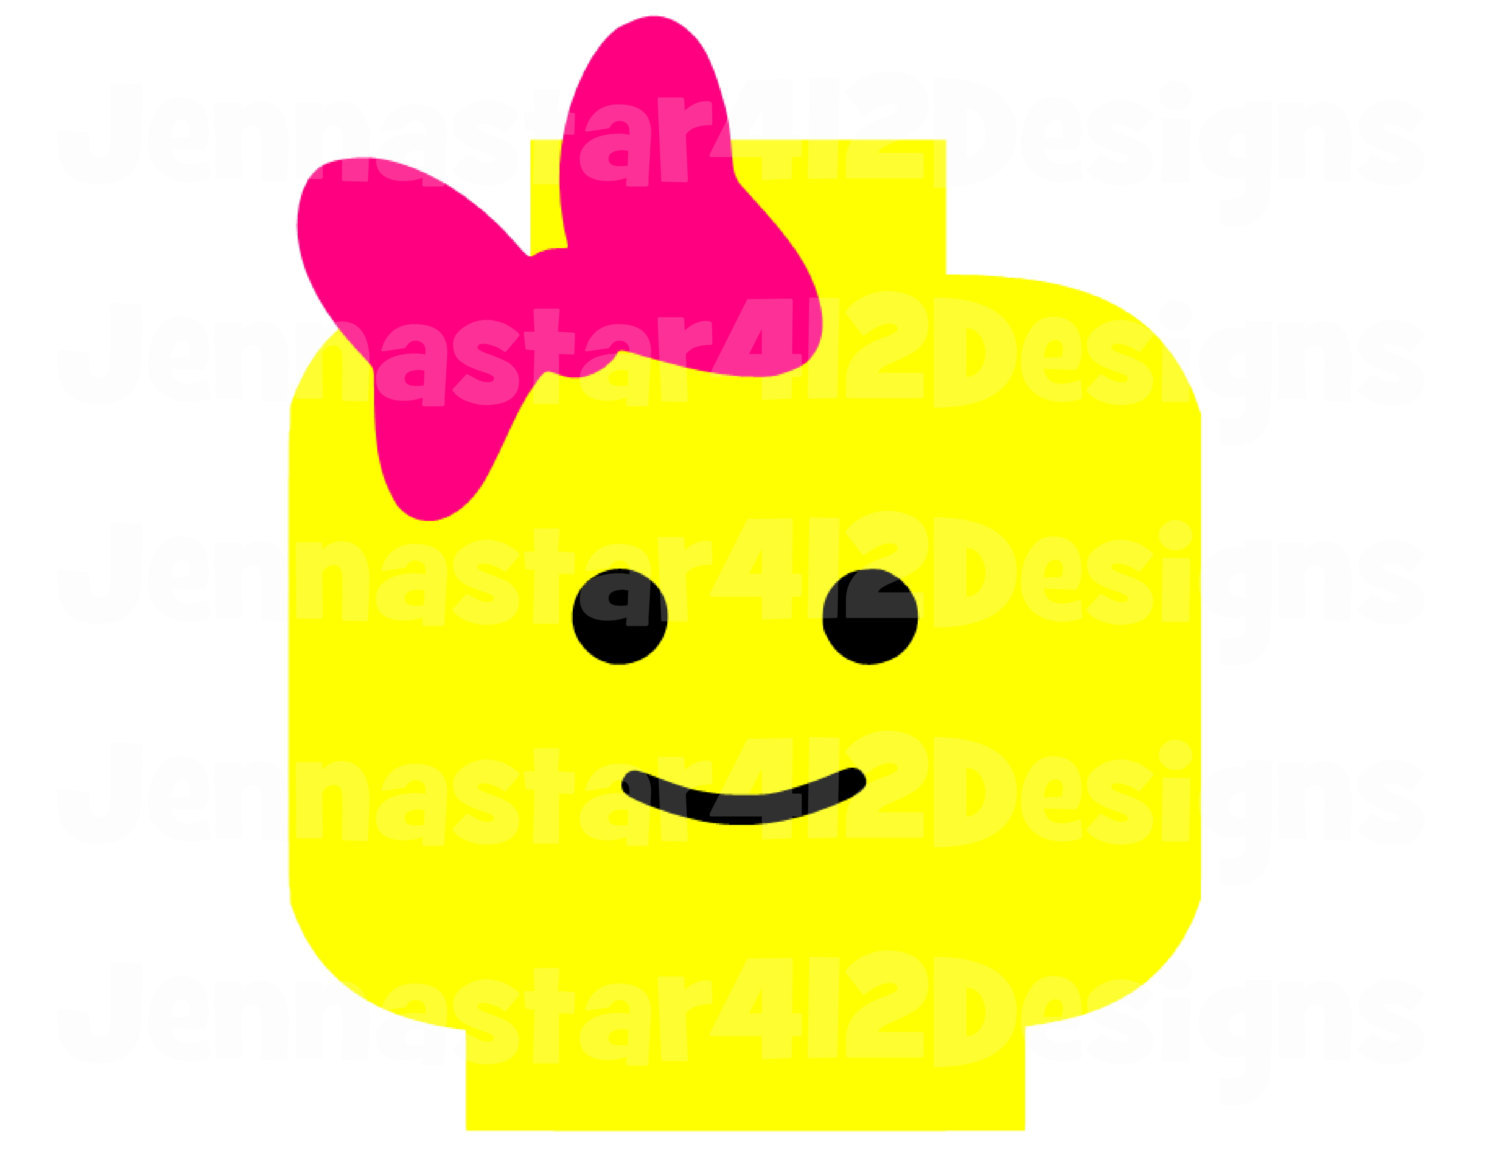 Lego clipart lego head Printable Bow JennaStar412Designs DIY Printable